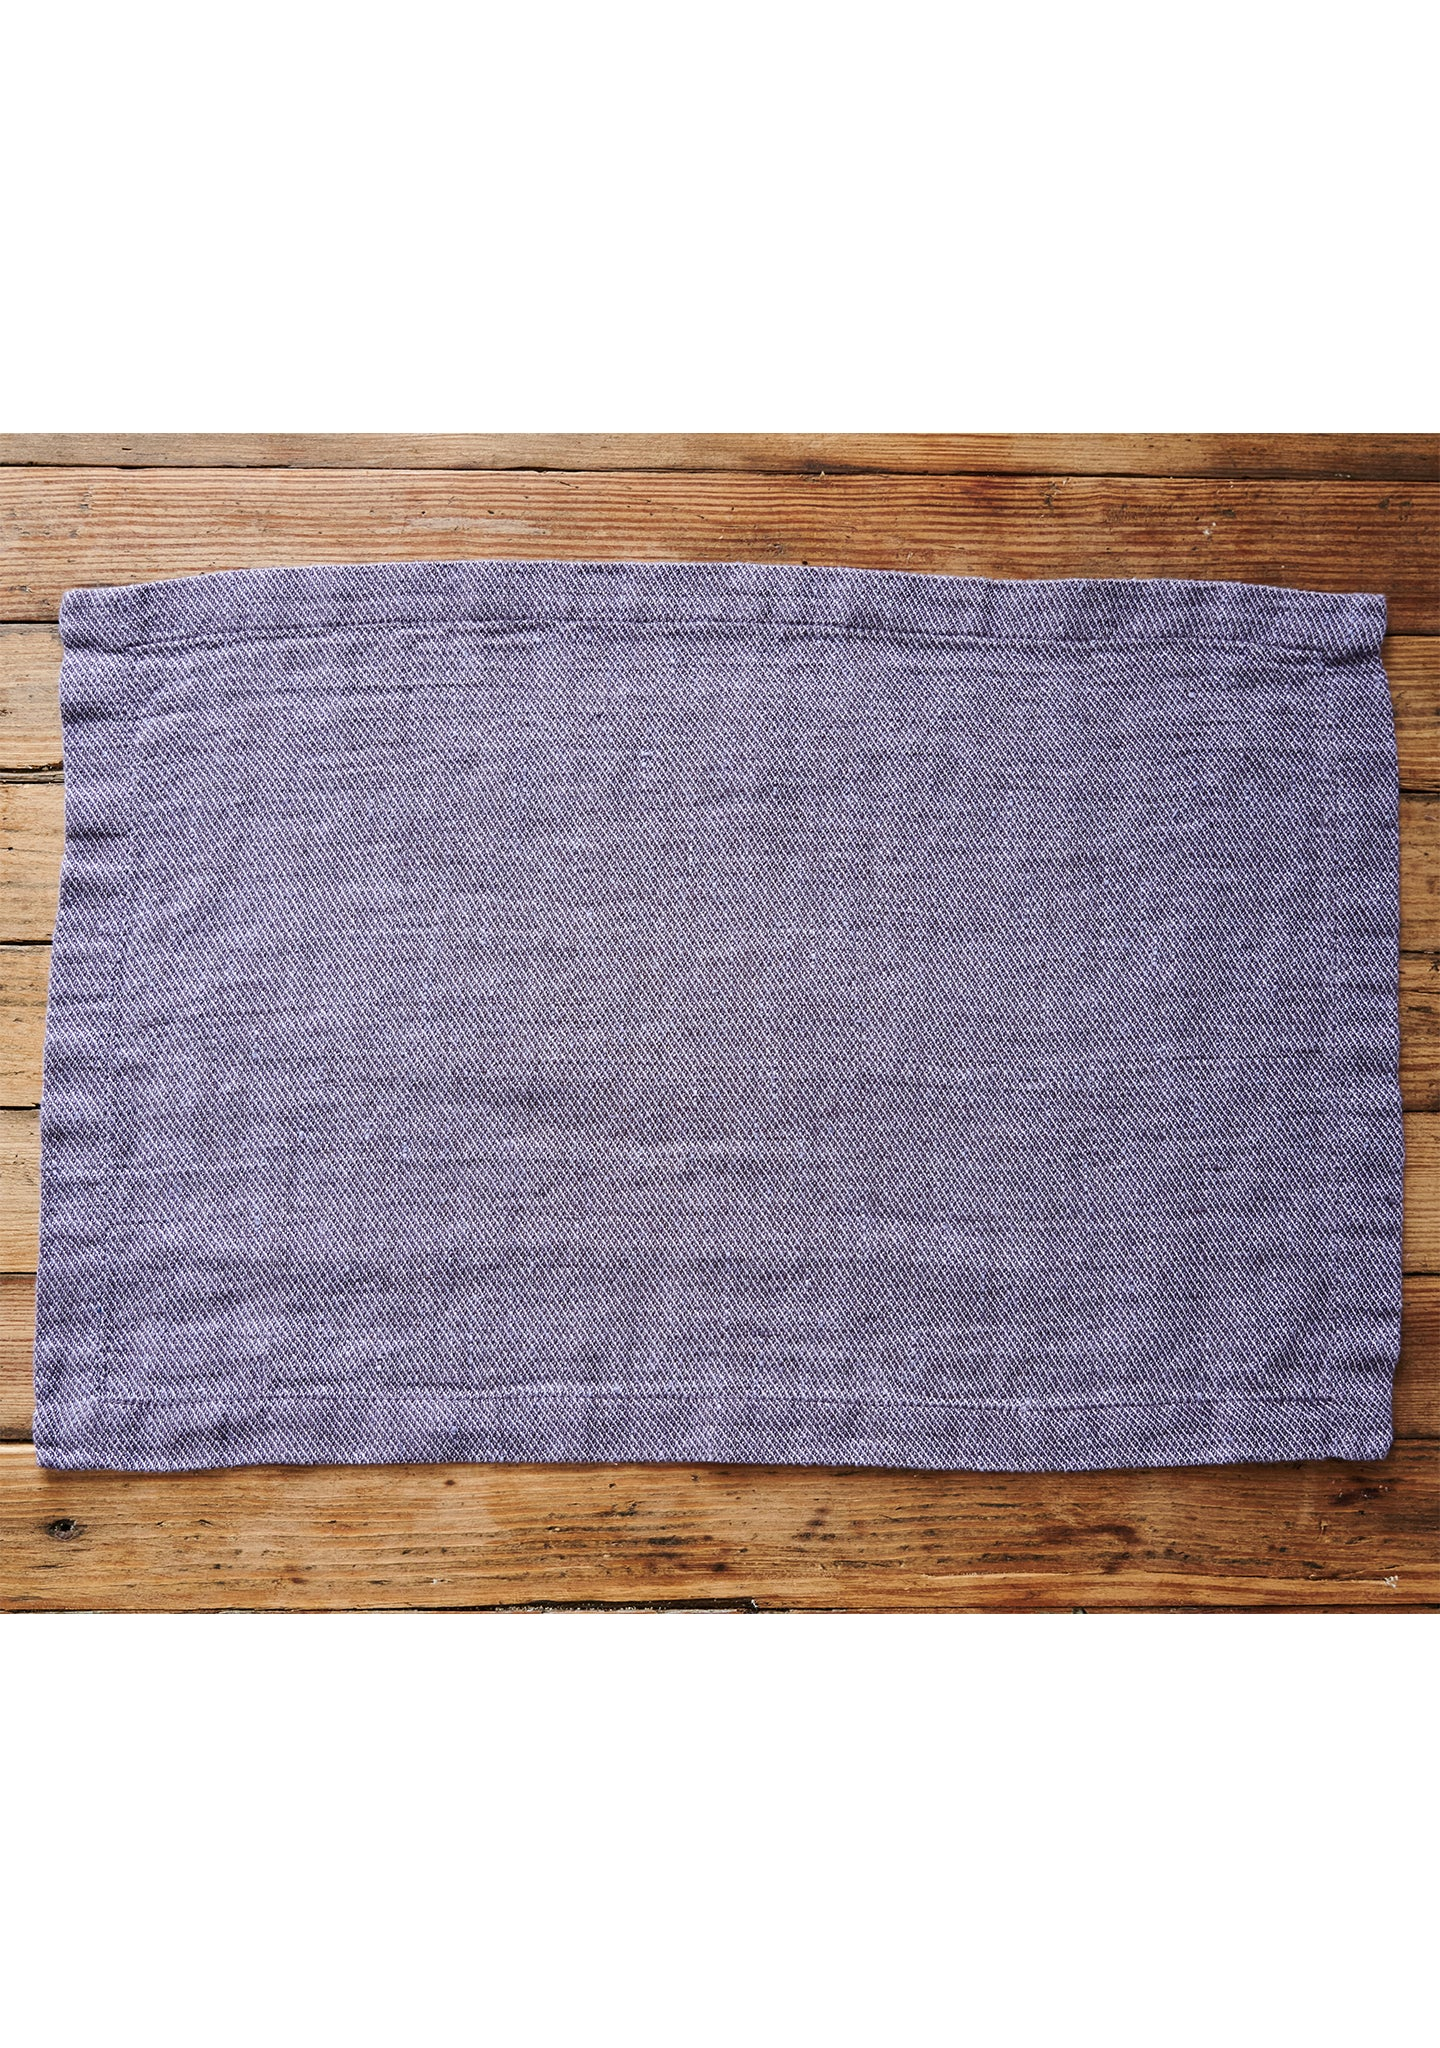 placemat linen placemats purple